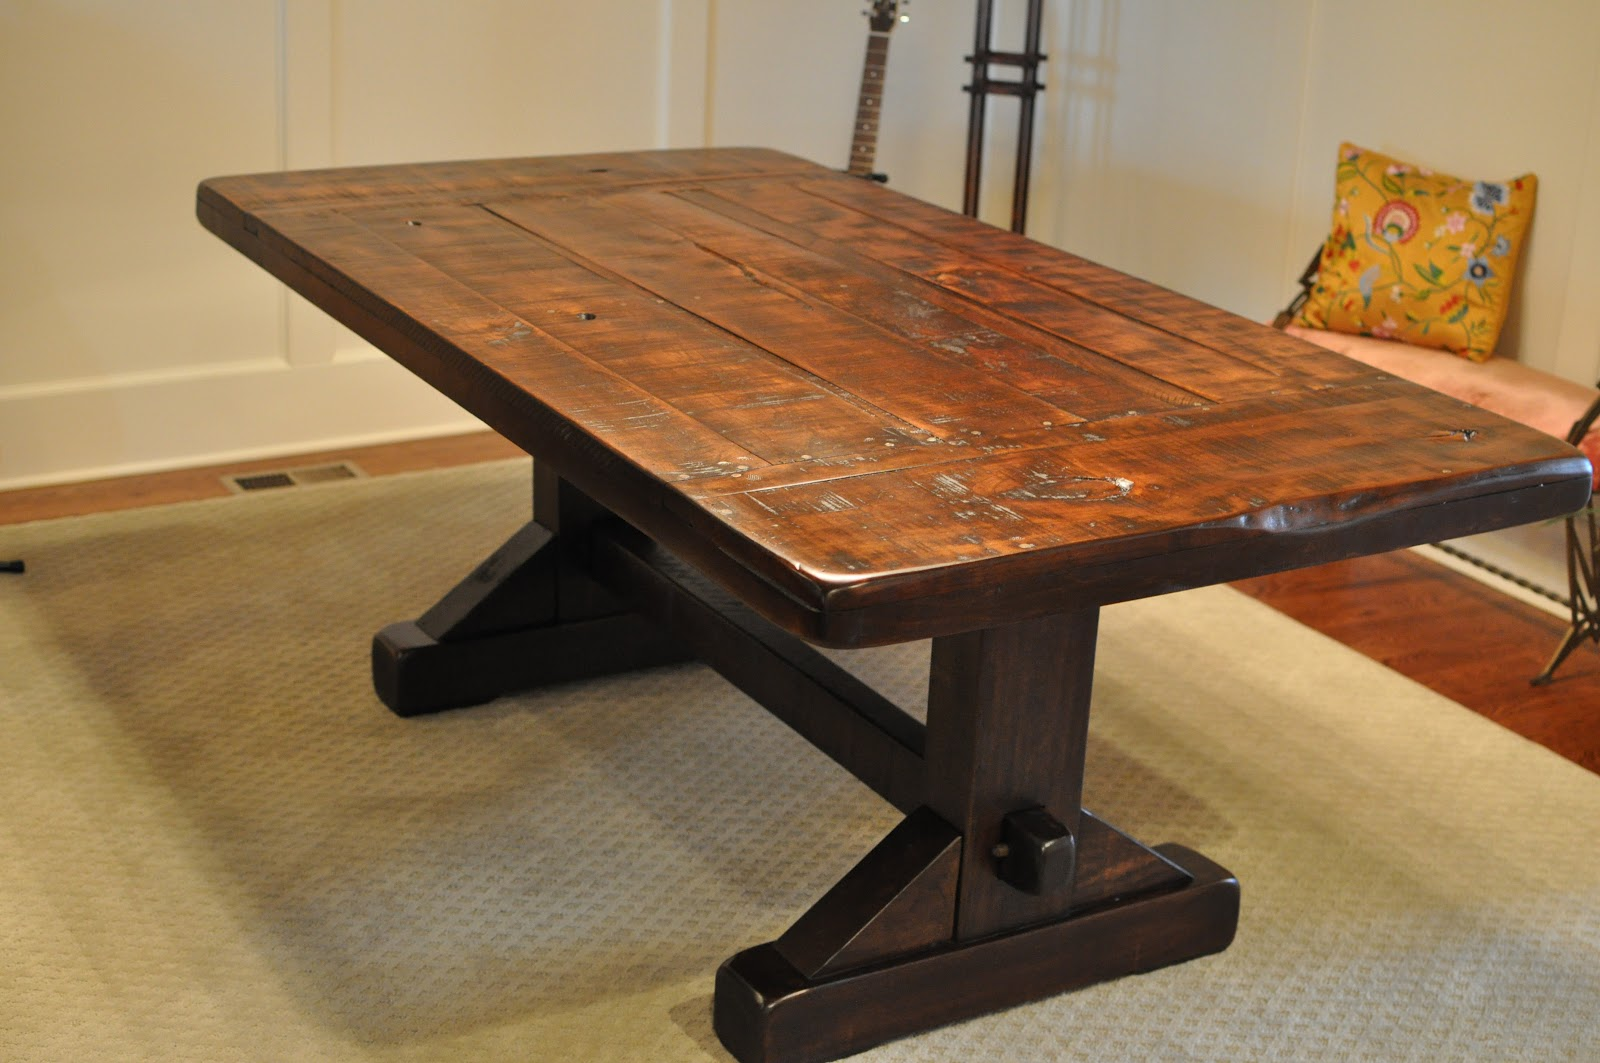 The Emerson Rustic Trestle Dining Table Atlanta Georgia Rustic Trades Furniture